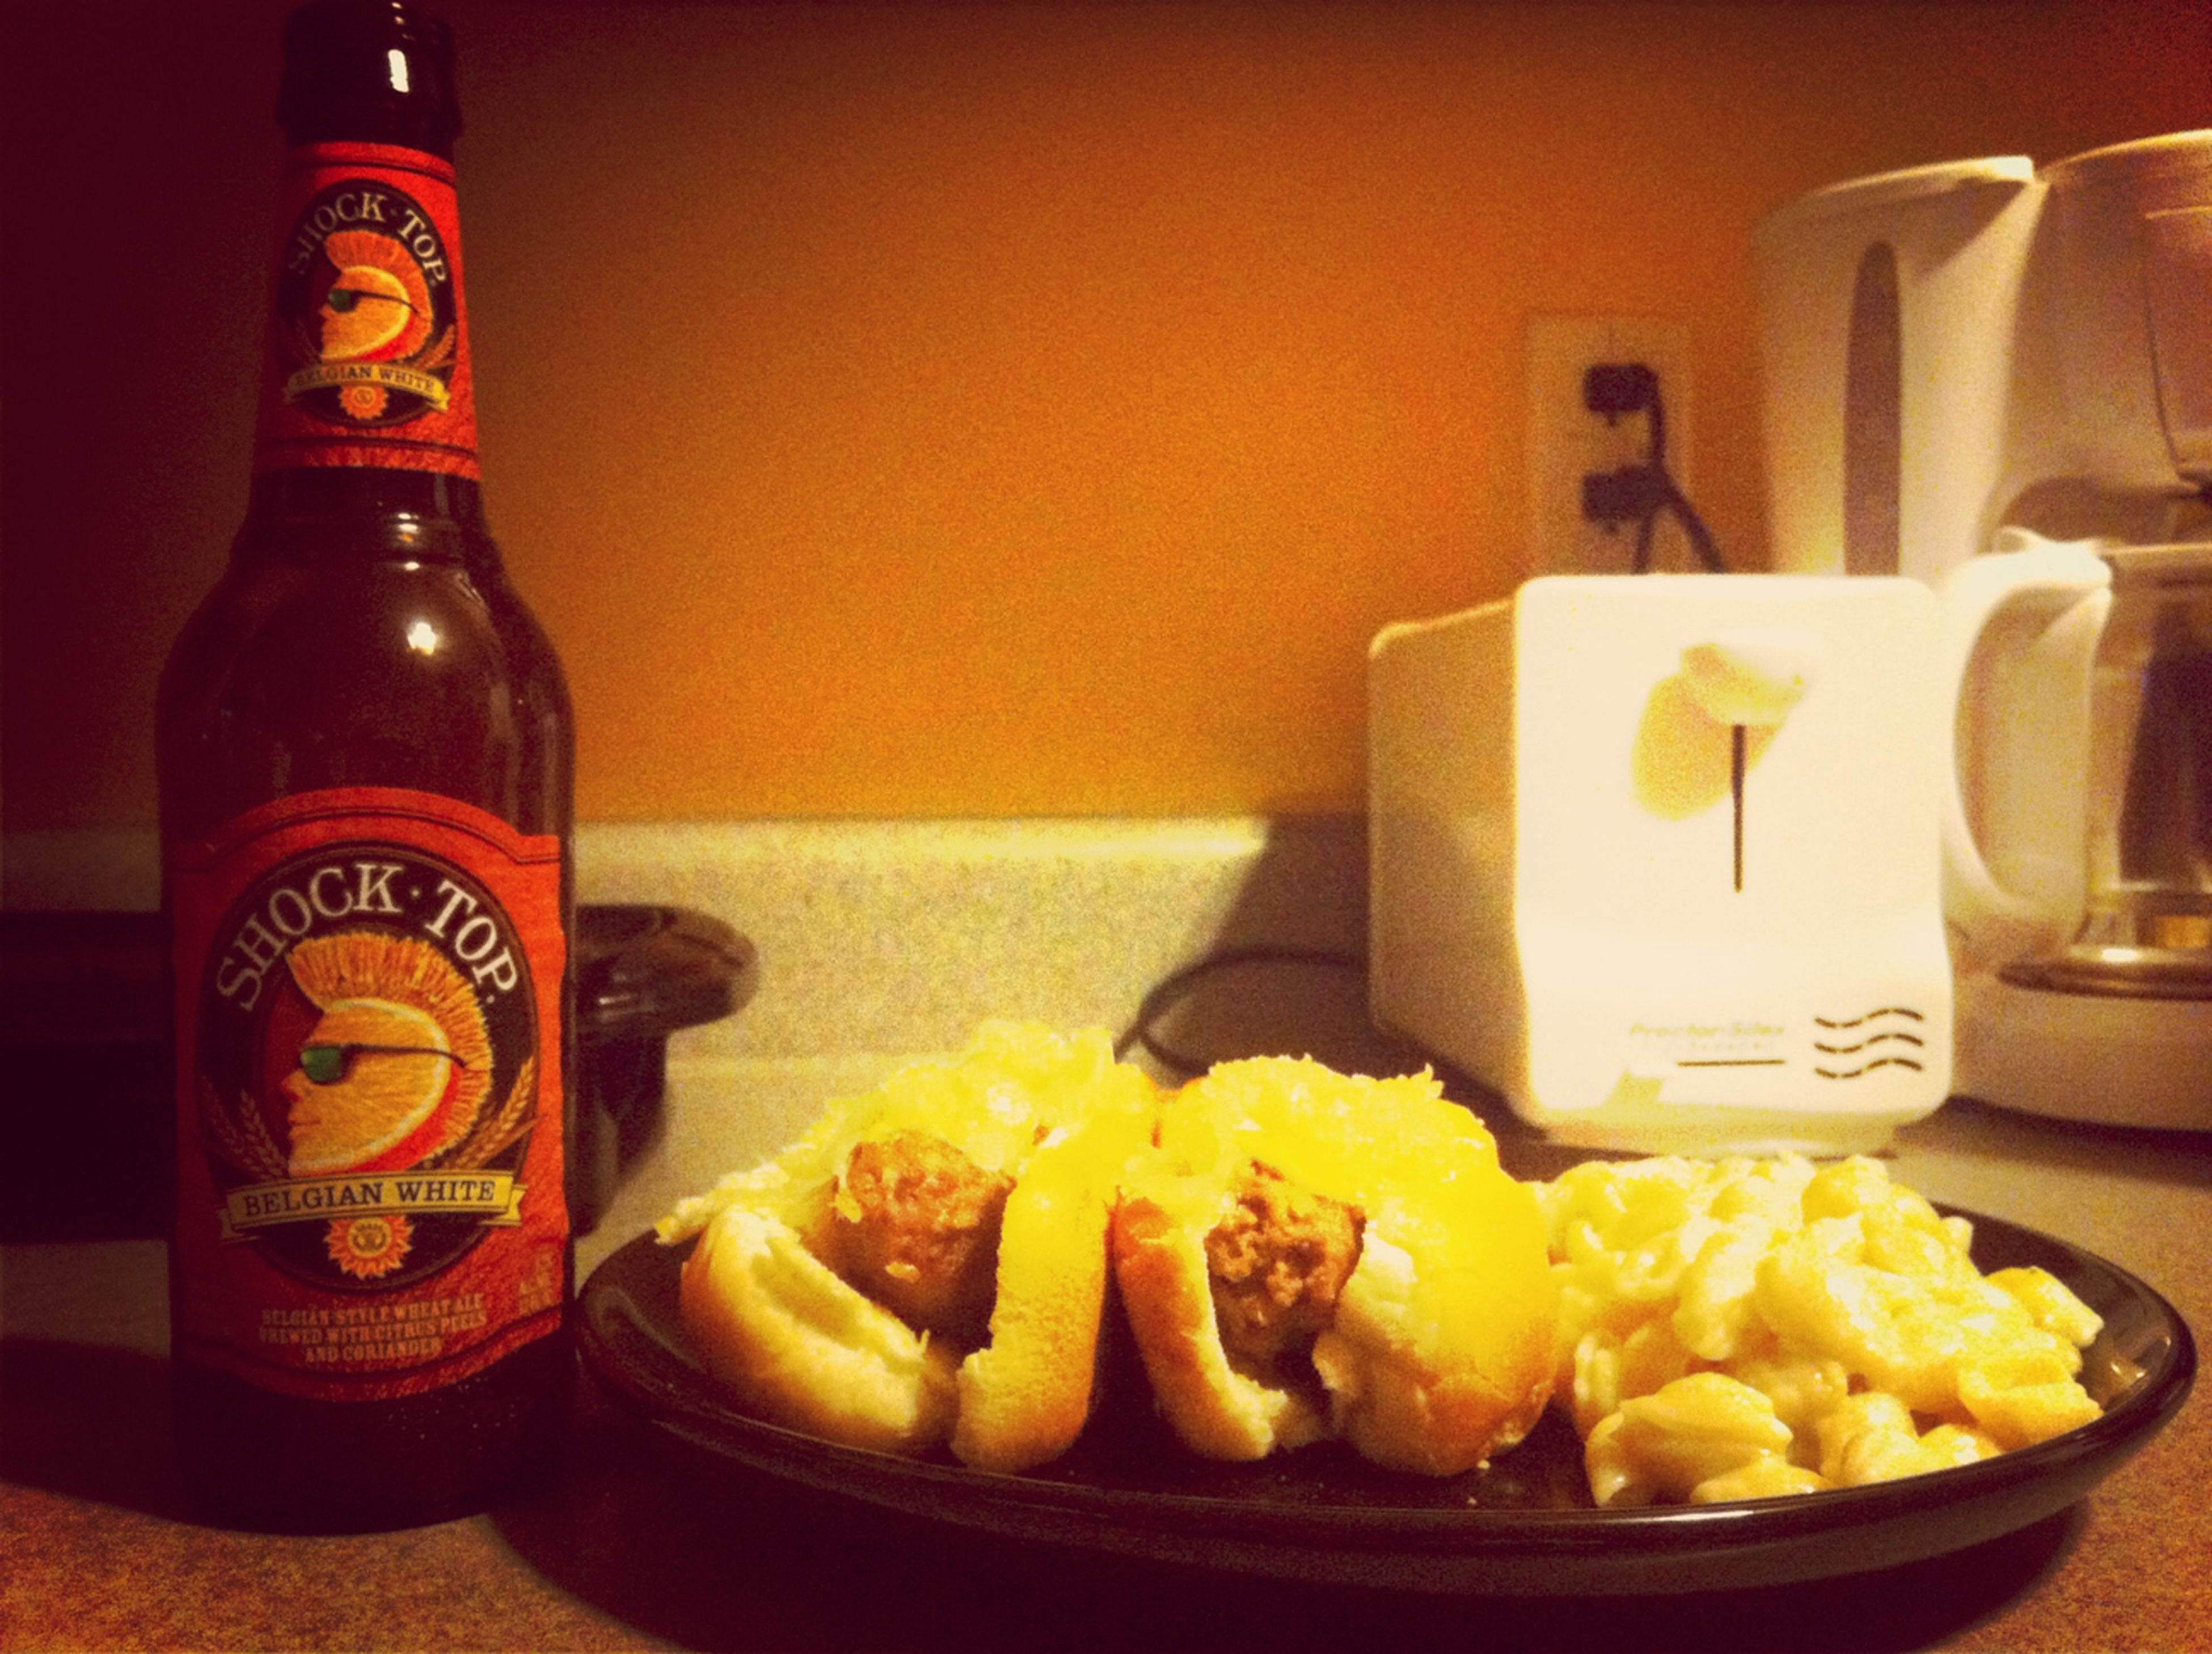 Anniversary Dinner! Brats, Mac and cheese, and a shock top to make it better!